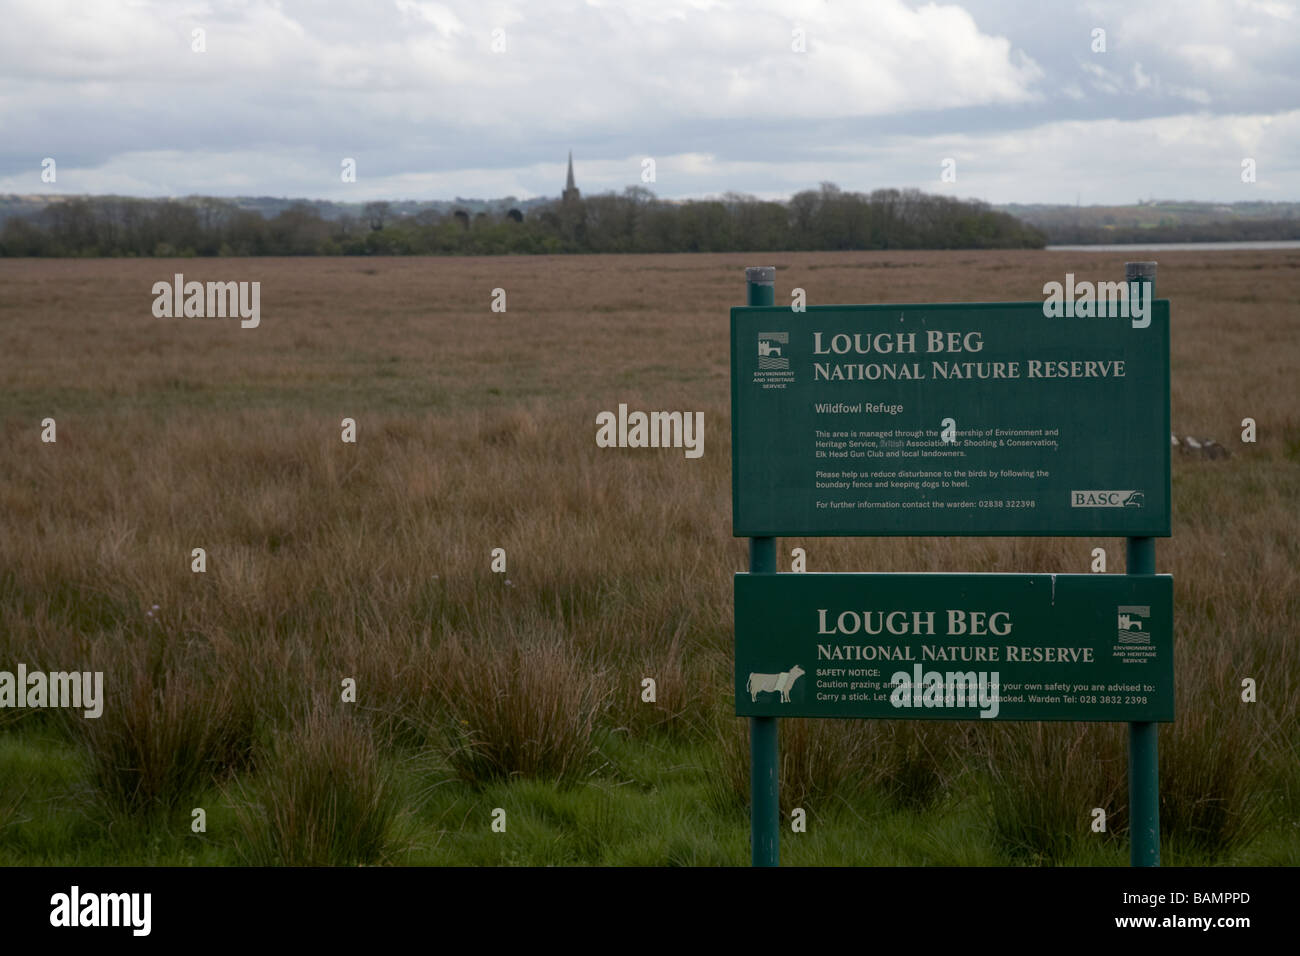 Lough Beg National Nature Reserve and Church Island in the background county derry londonderry northern ireland - Stock Image